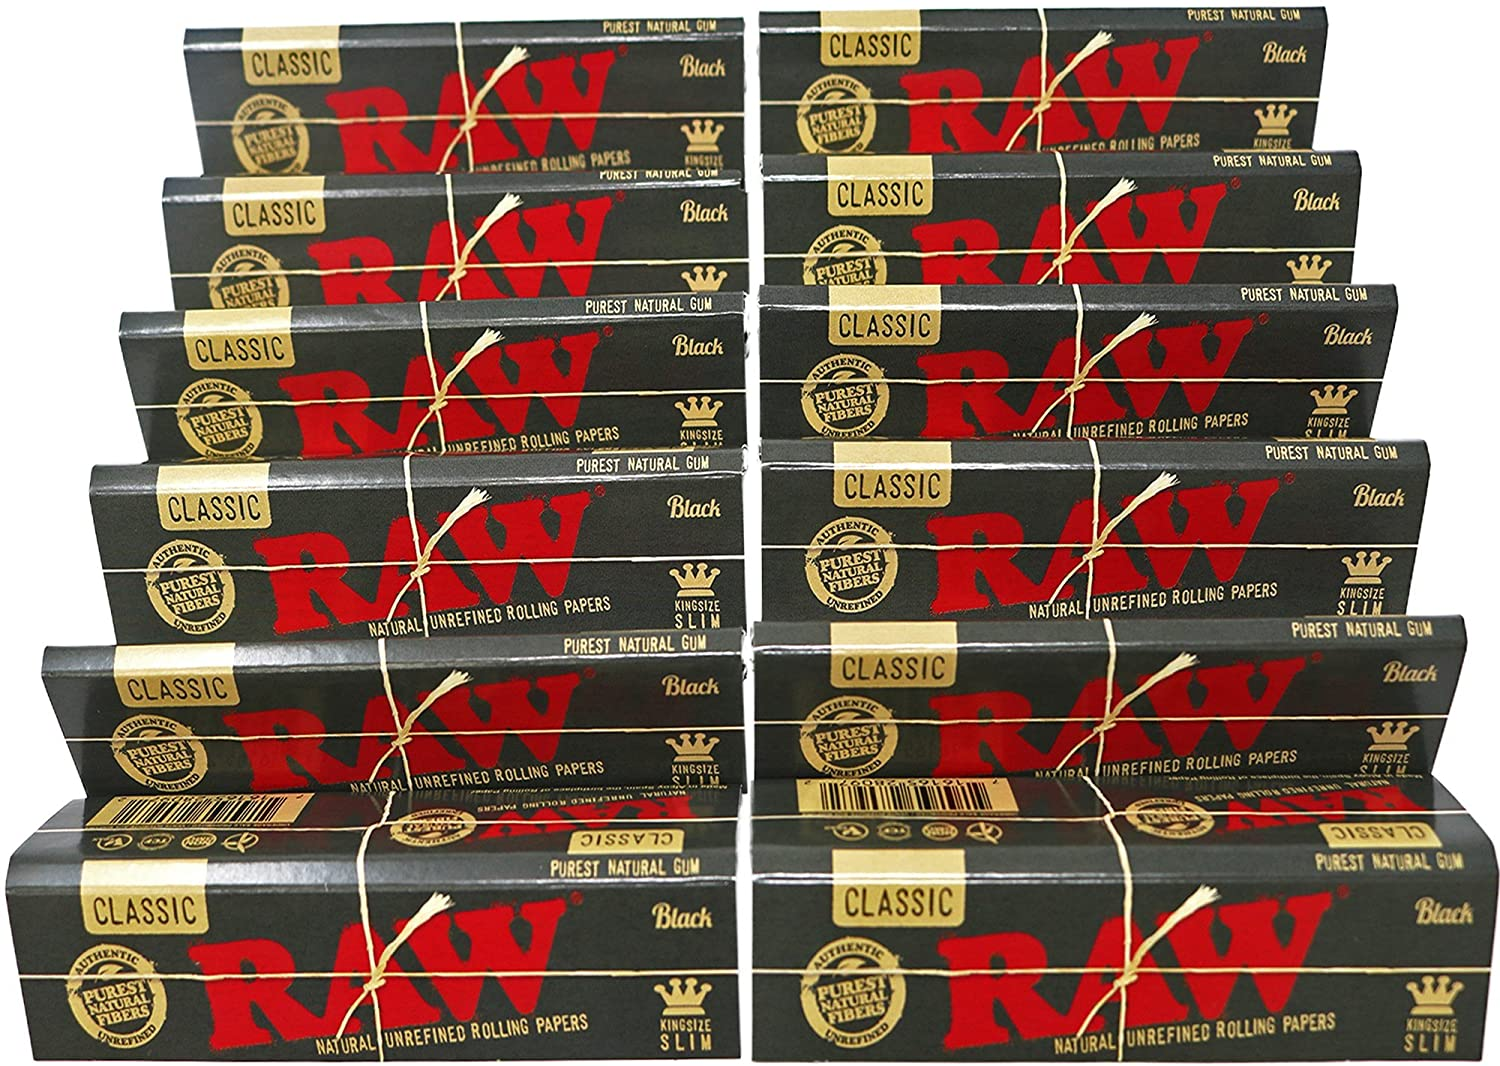 Raw Black King Size Slim Natural Unrefined Rolling Papers 1 Pack 32 Leaves